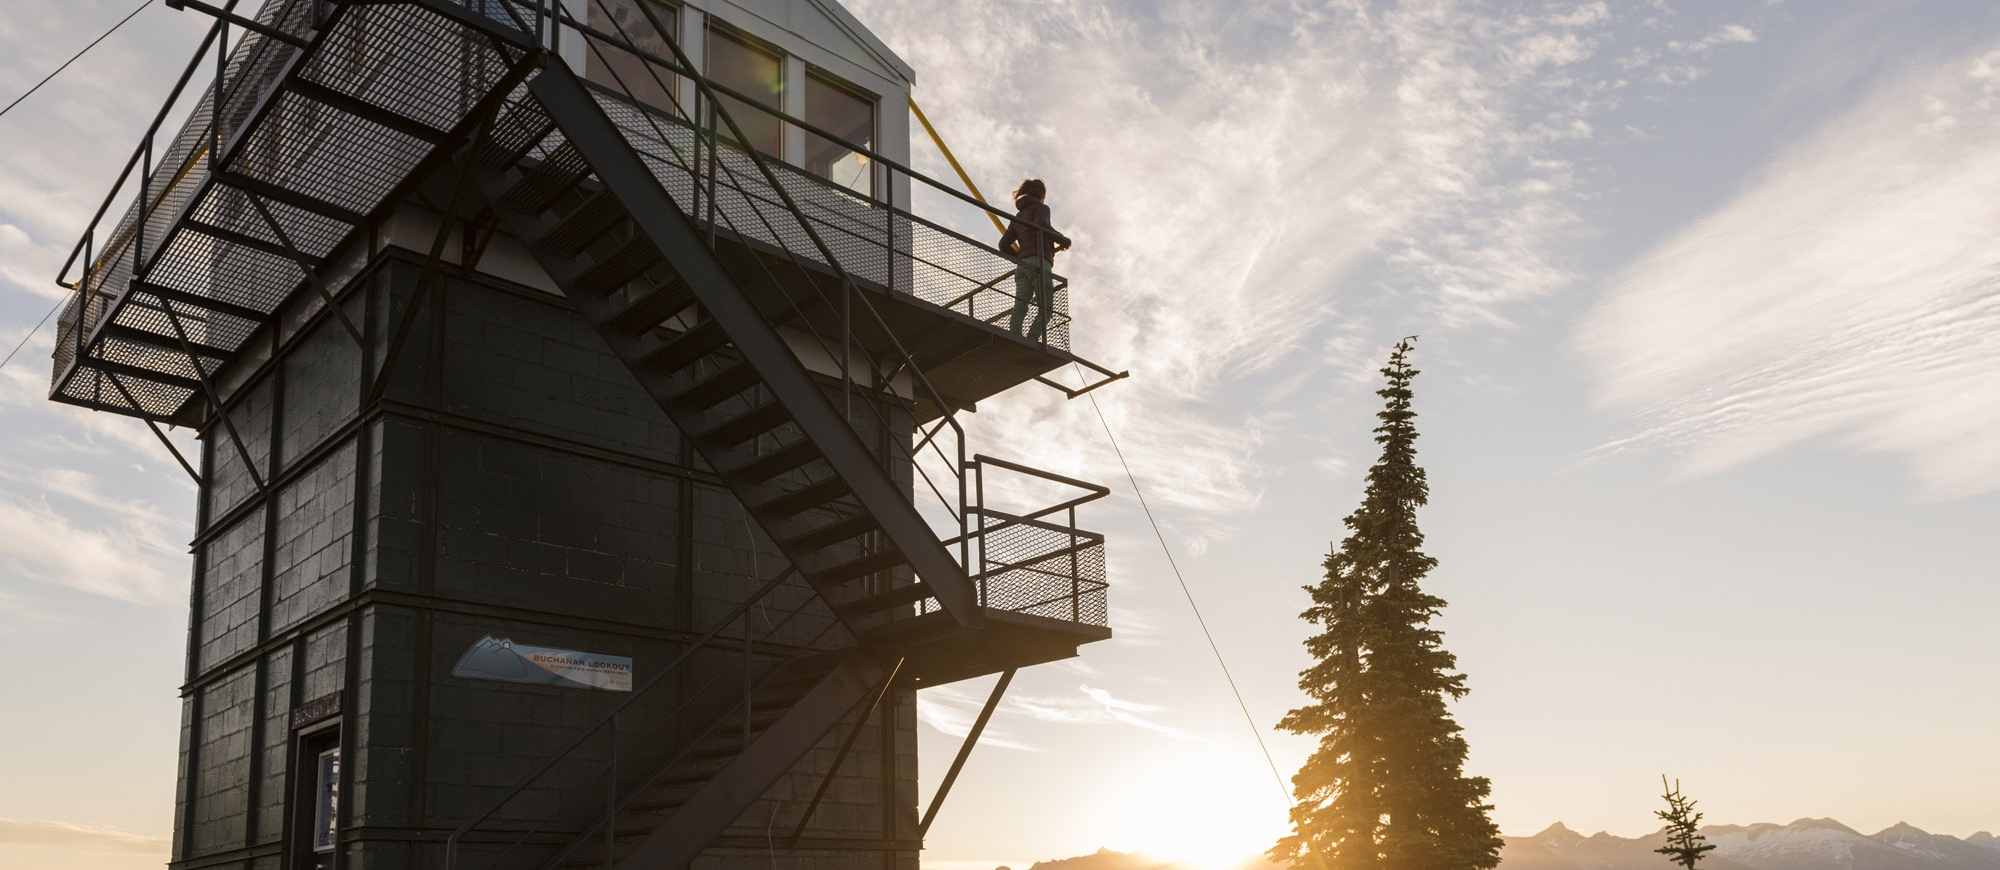 Someone standing on the balcony of the old fire watch tower on Mt Buchanan near Kaslo, BC